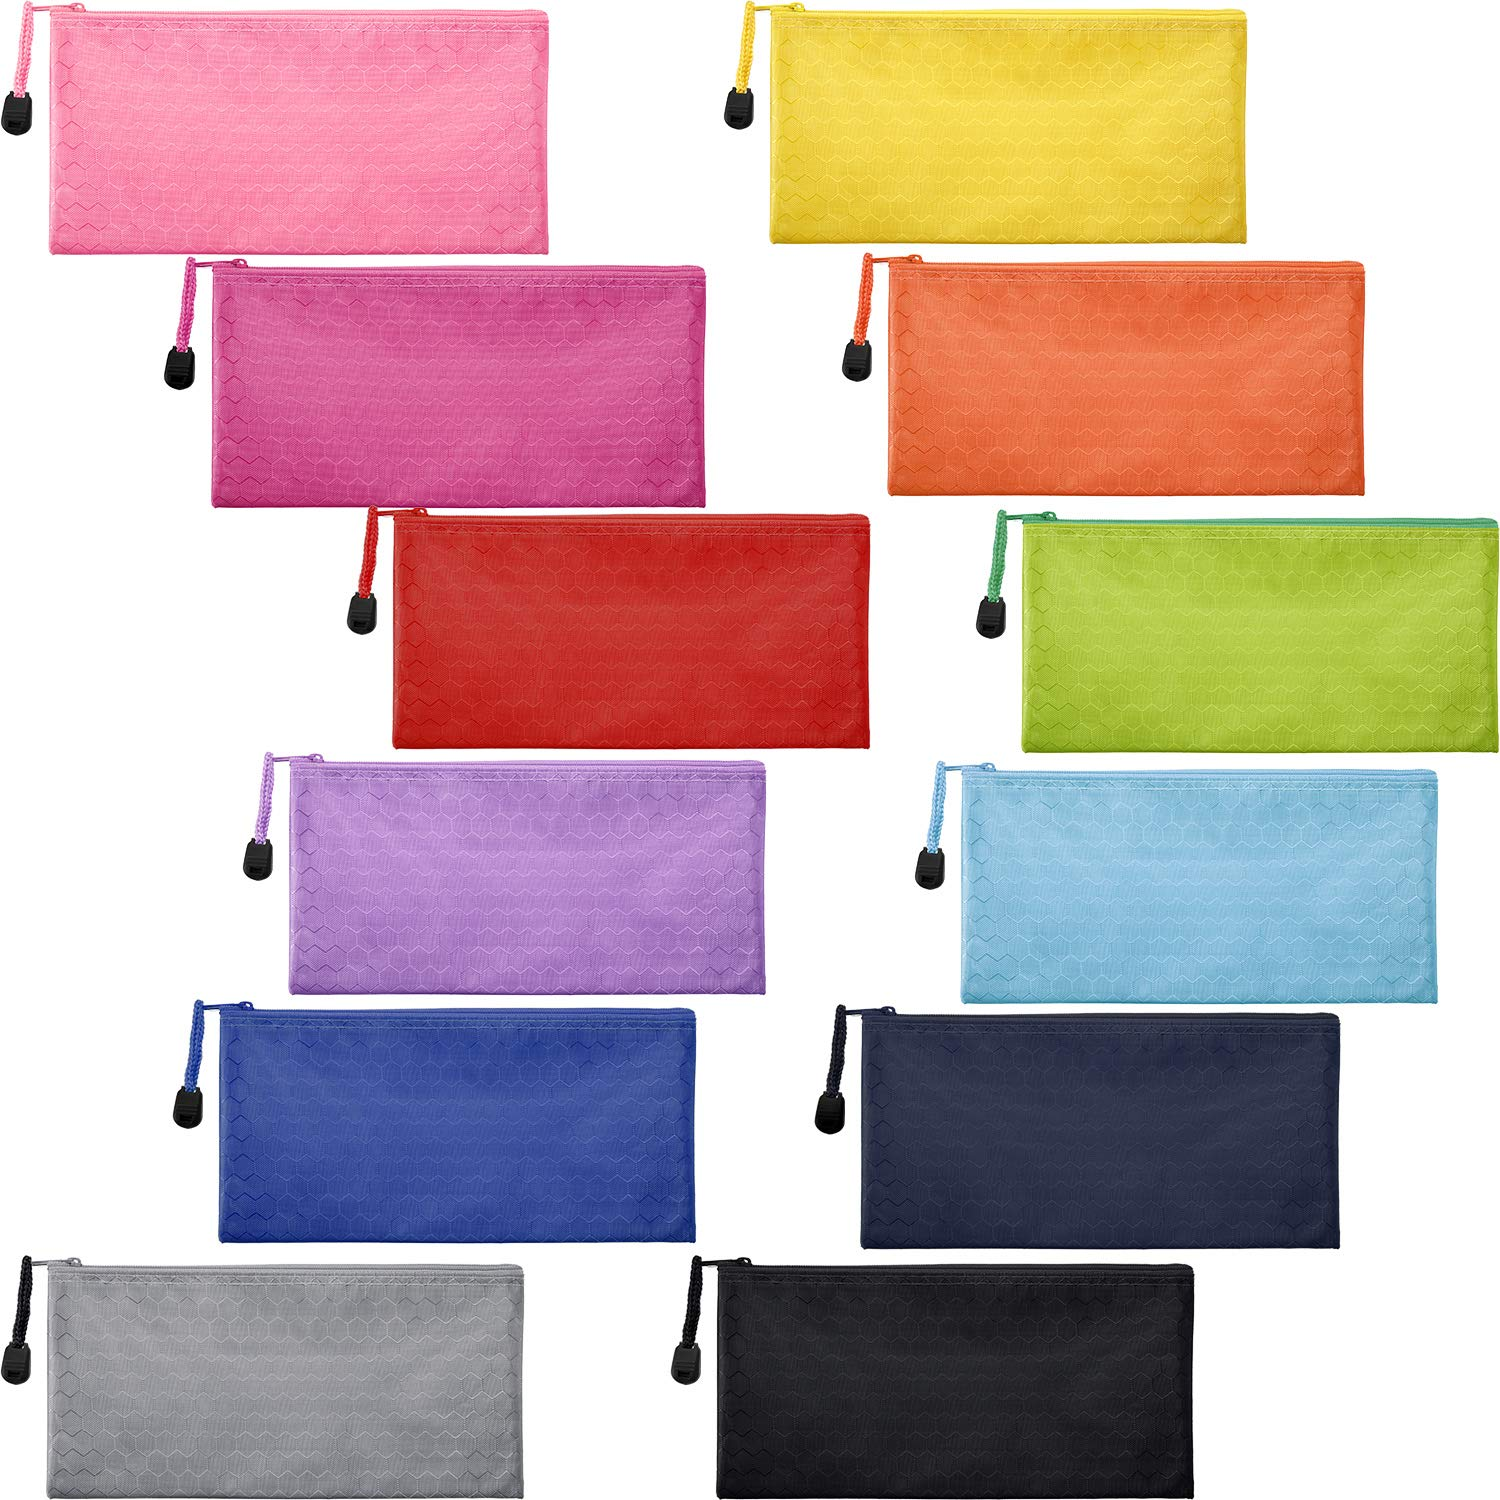 Jovitec 12 Pieces 12 Colors Zipper Waterproof Bag Pencil Pouch for Cosmetic Makeup Office Supplies and Travel Accessories